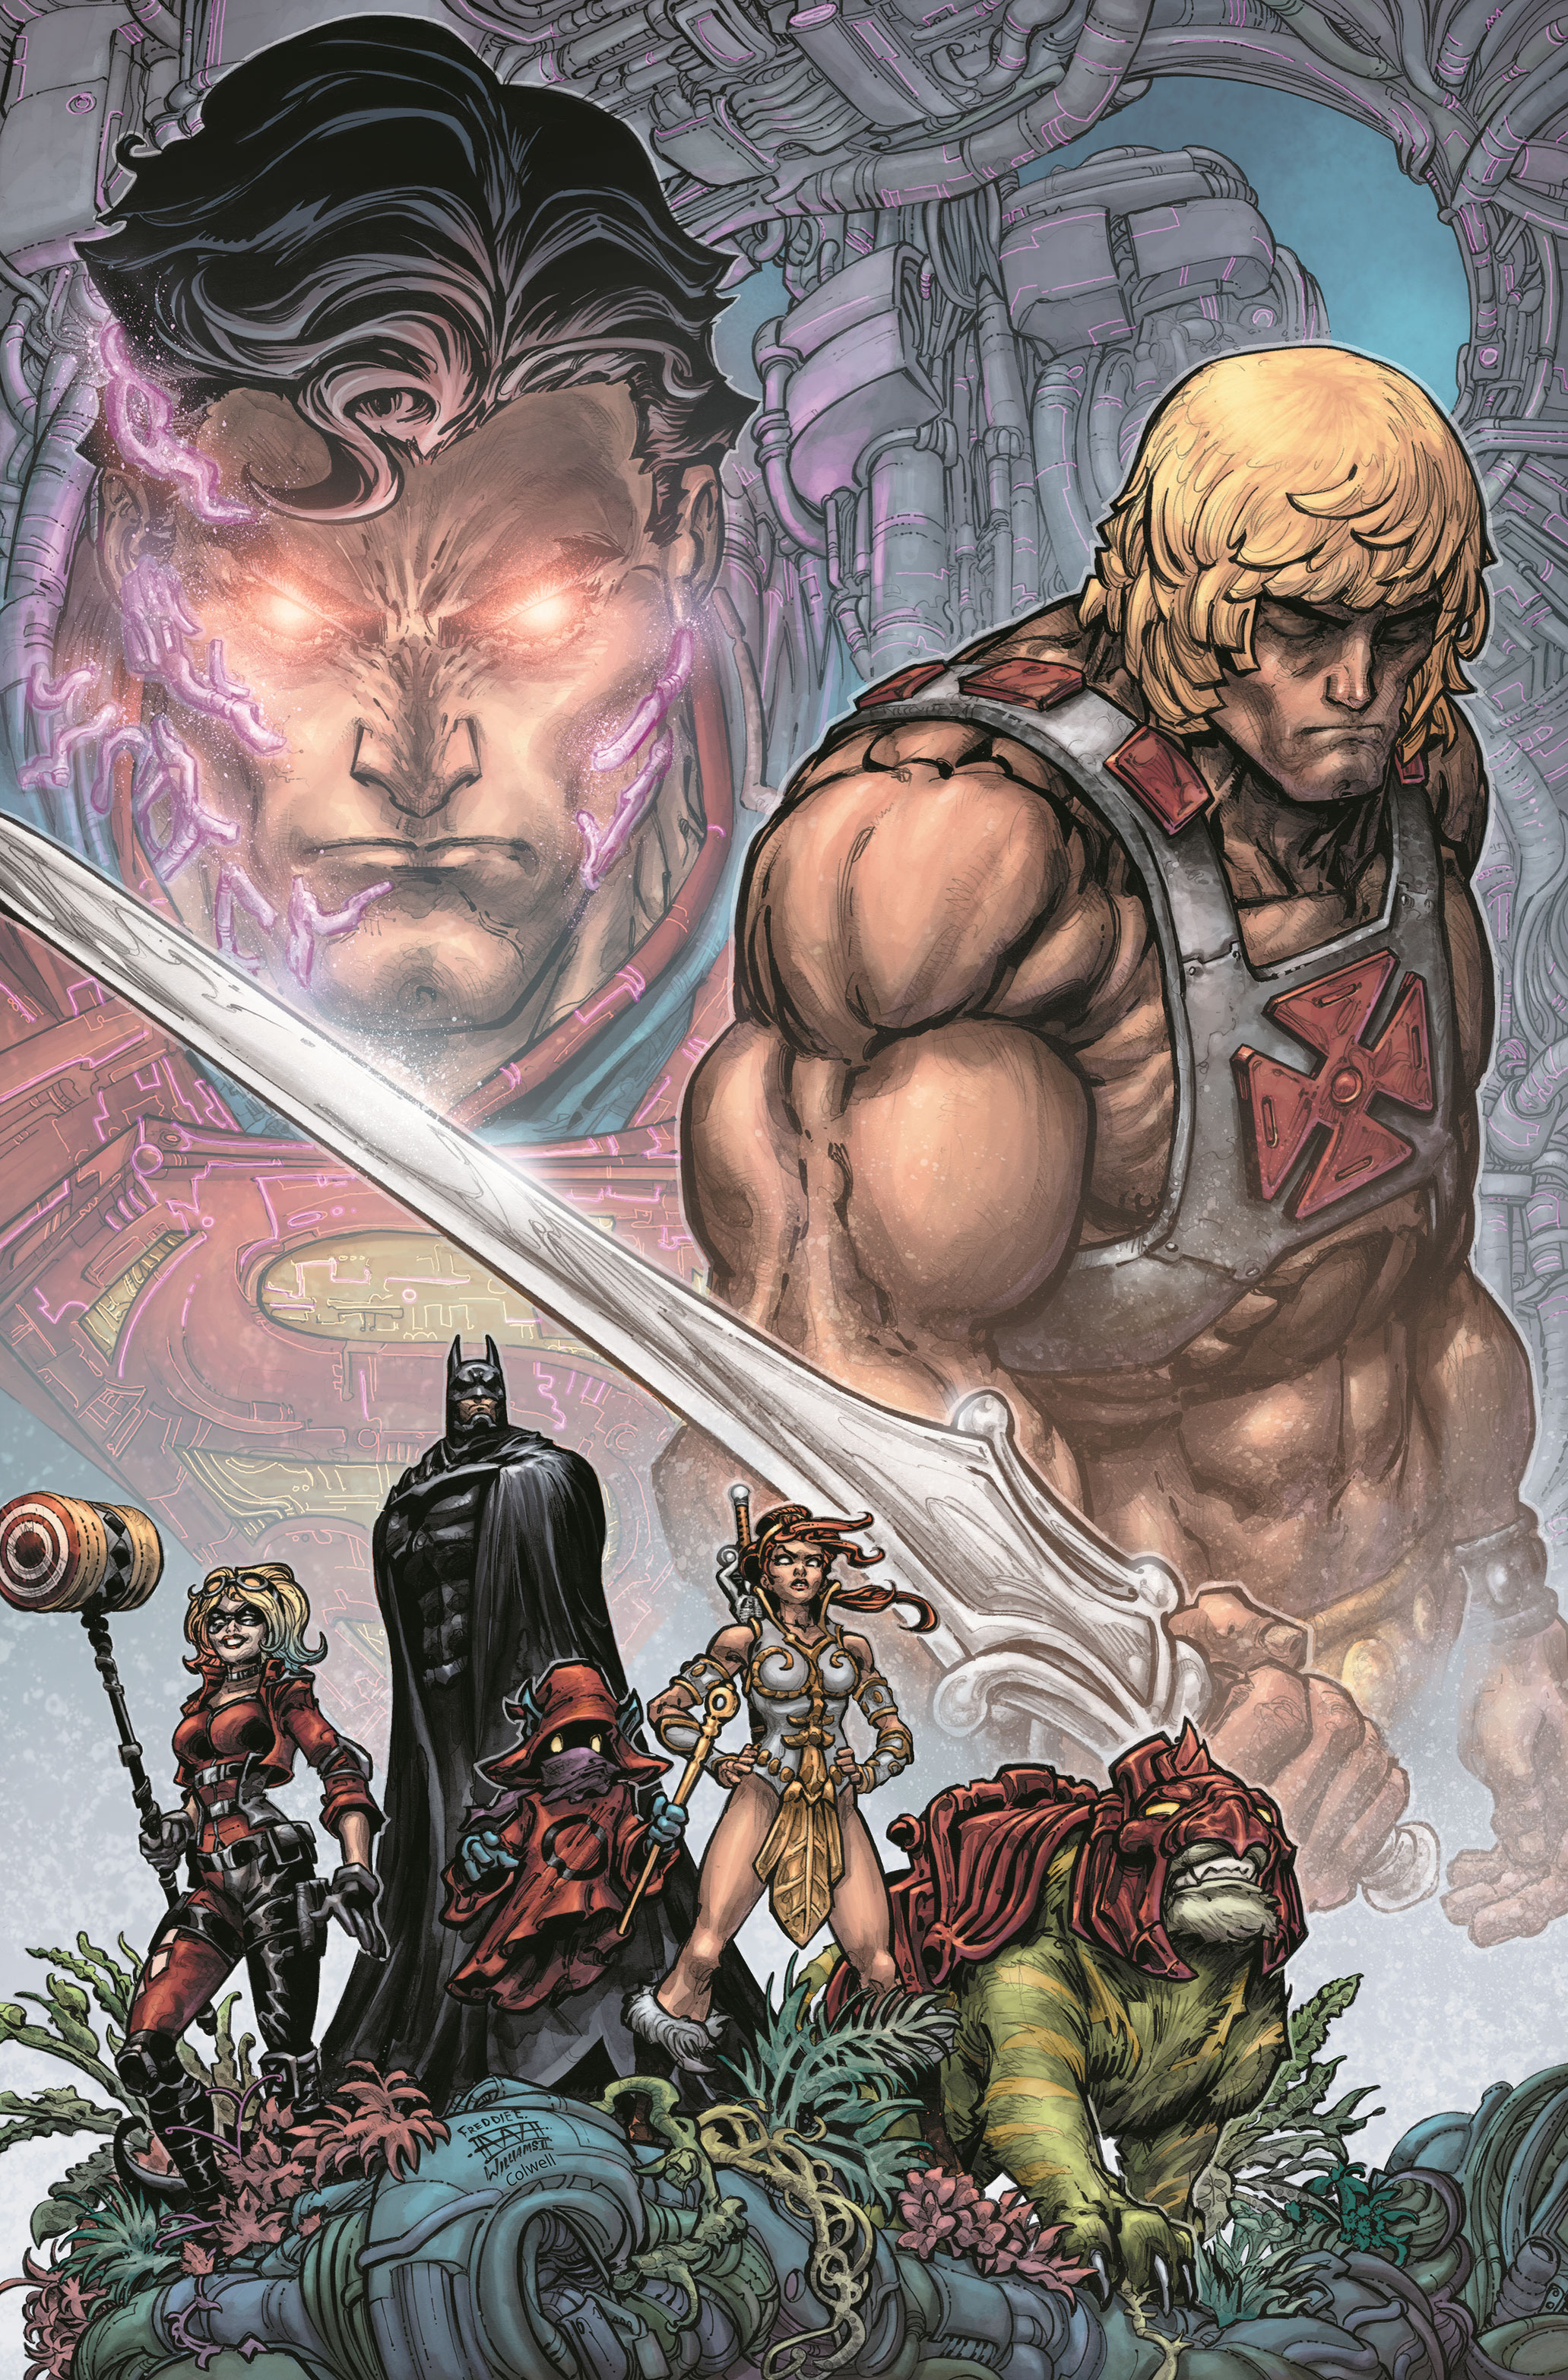 DC SUPER HEROES AND SUPER-VILLAINS COLLIDE WITH THE POWER OF GRAYSKULL IN INJUSTICE VS. HE-MAN AND THE MASTERS OF THE UNIVERSE